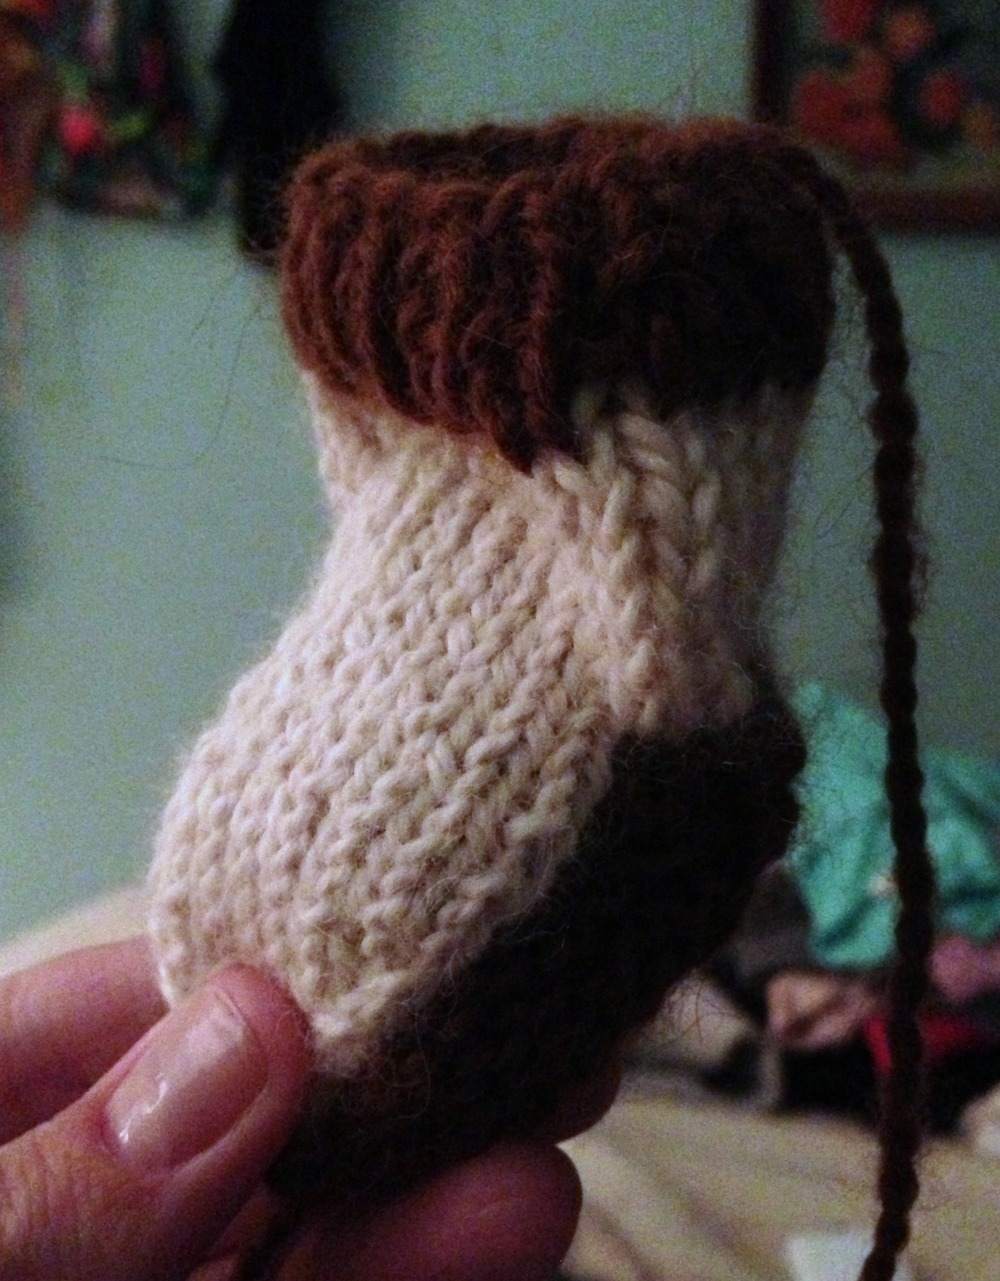 {finally off the knitting needles...}